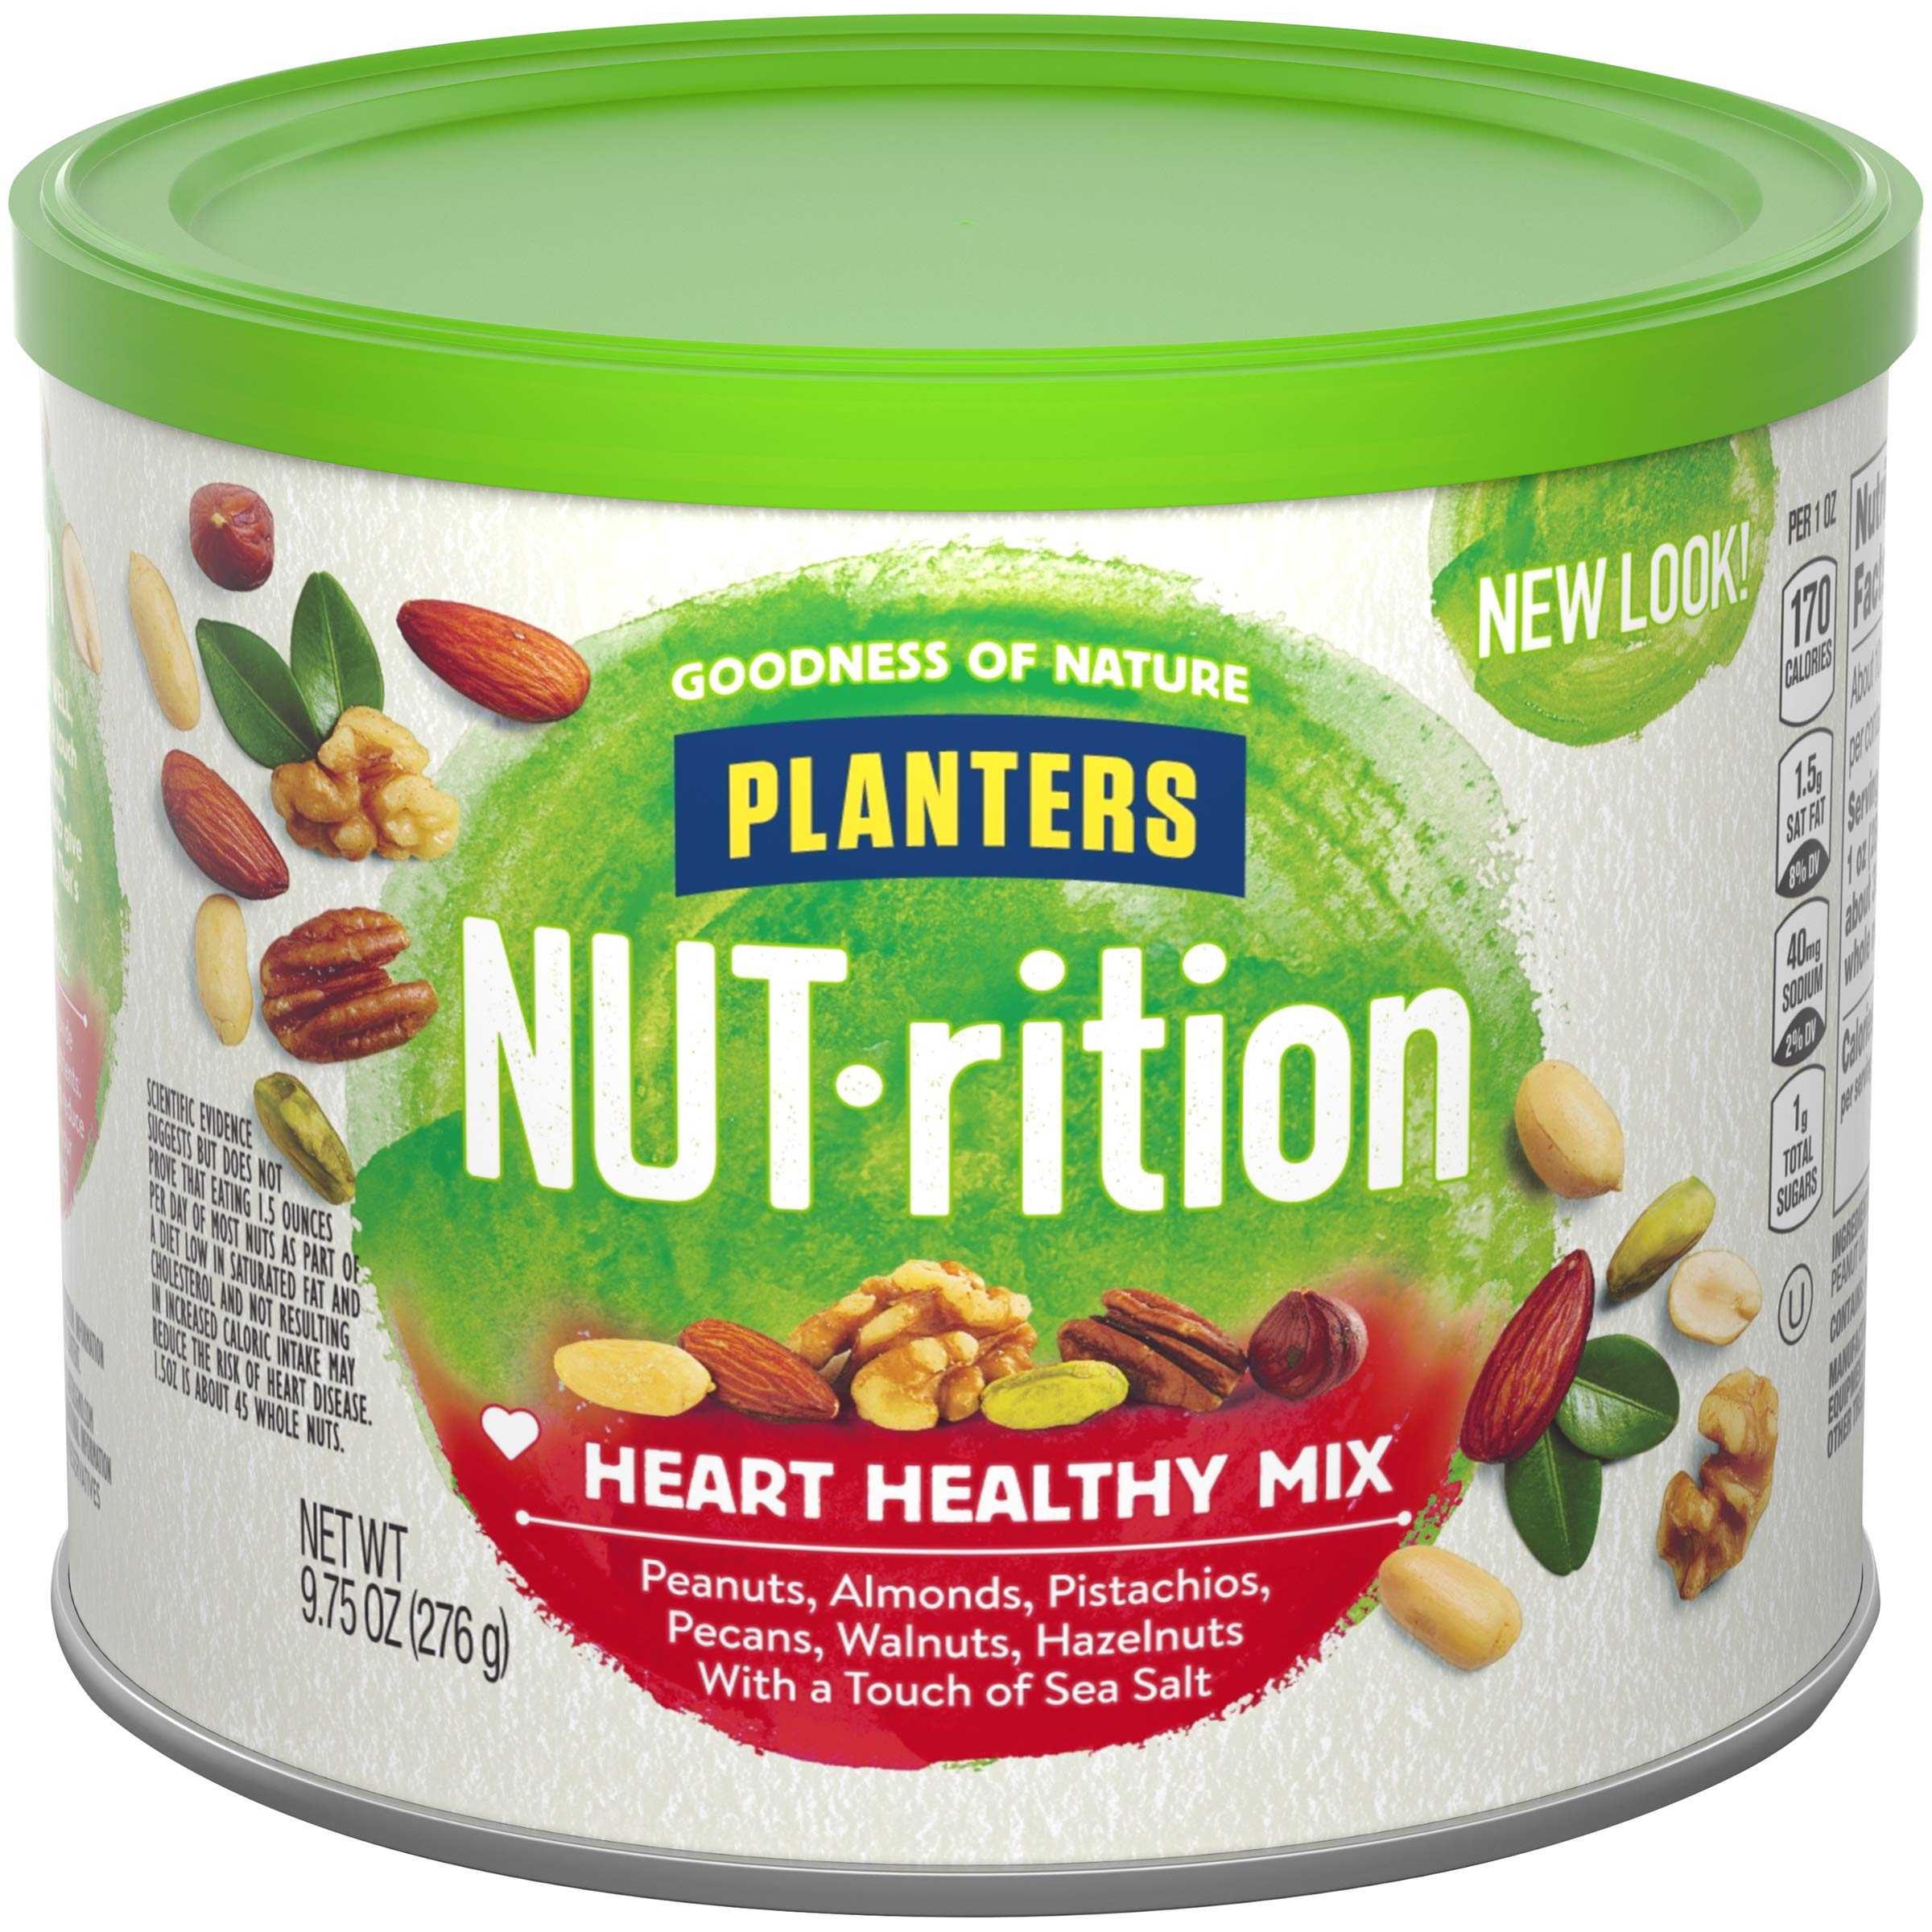 Planters NUT-rition Heart Healthy Snack Nuts Mix, 9.75 oz Can (Pack of 3) by NUTrition